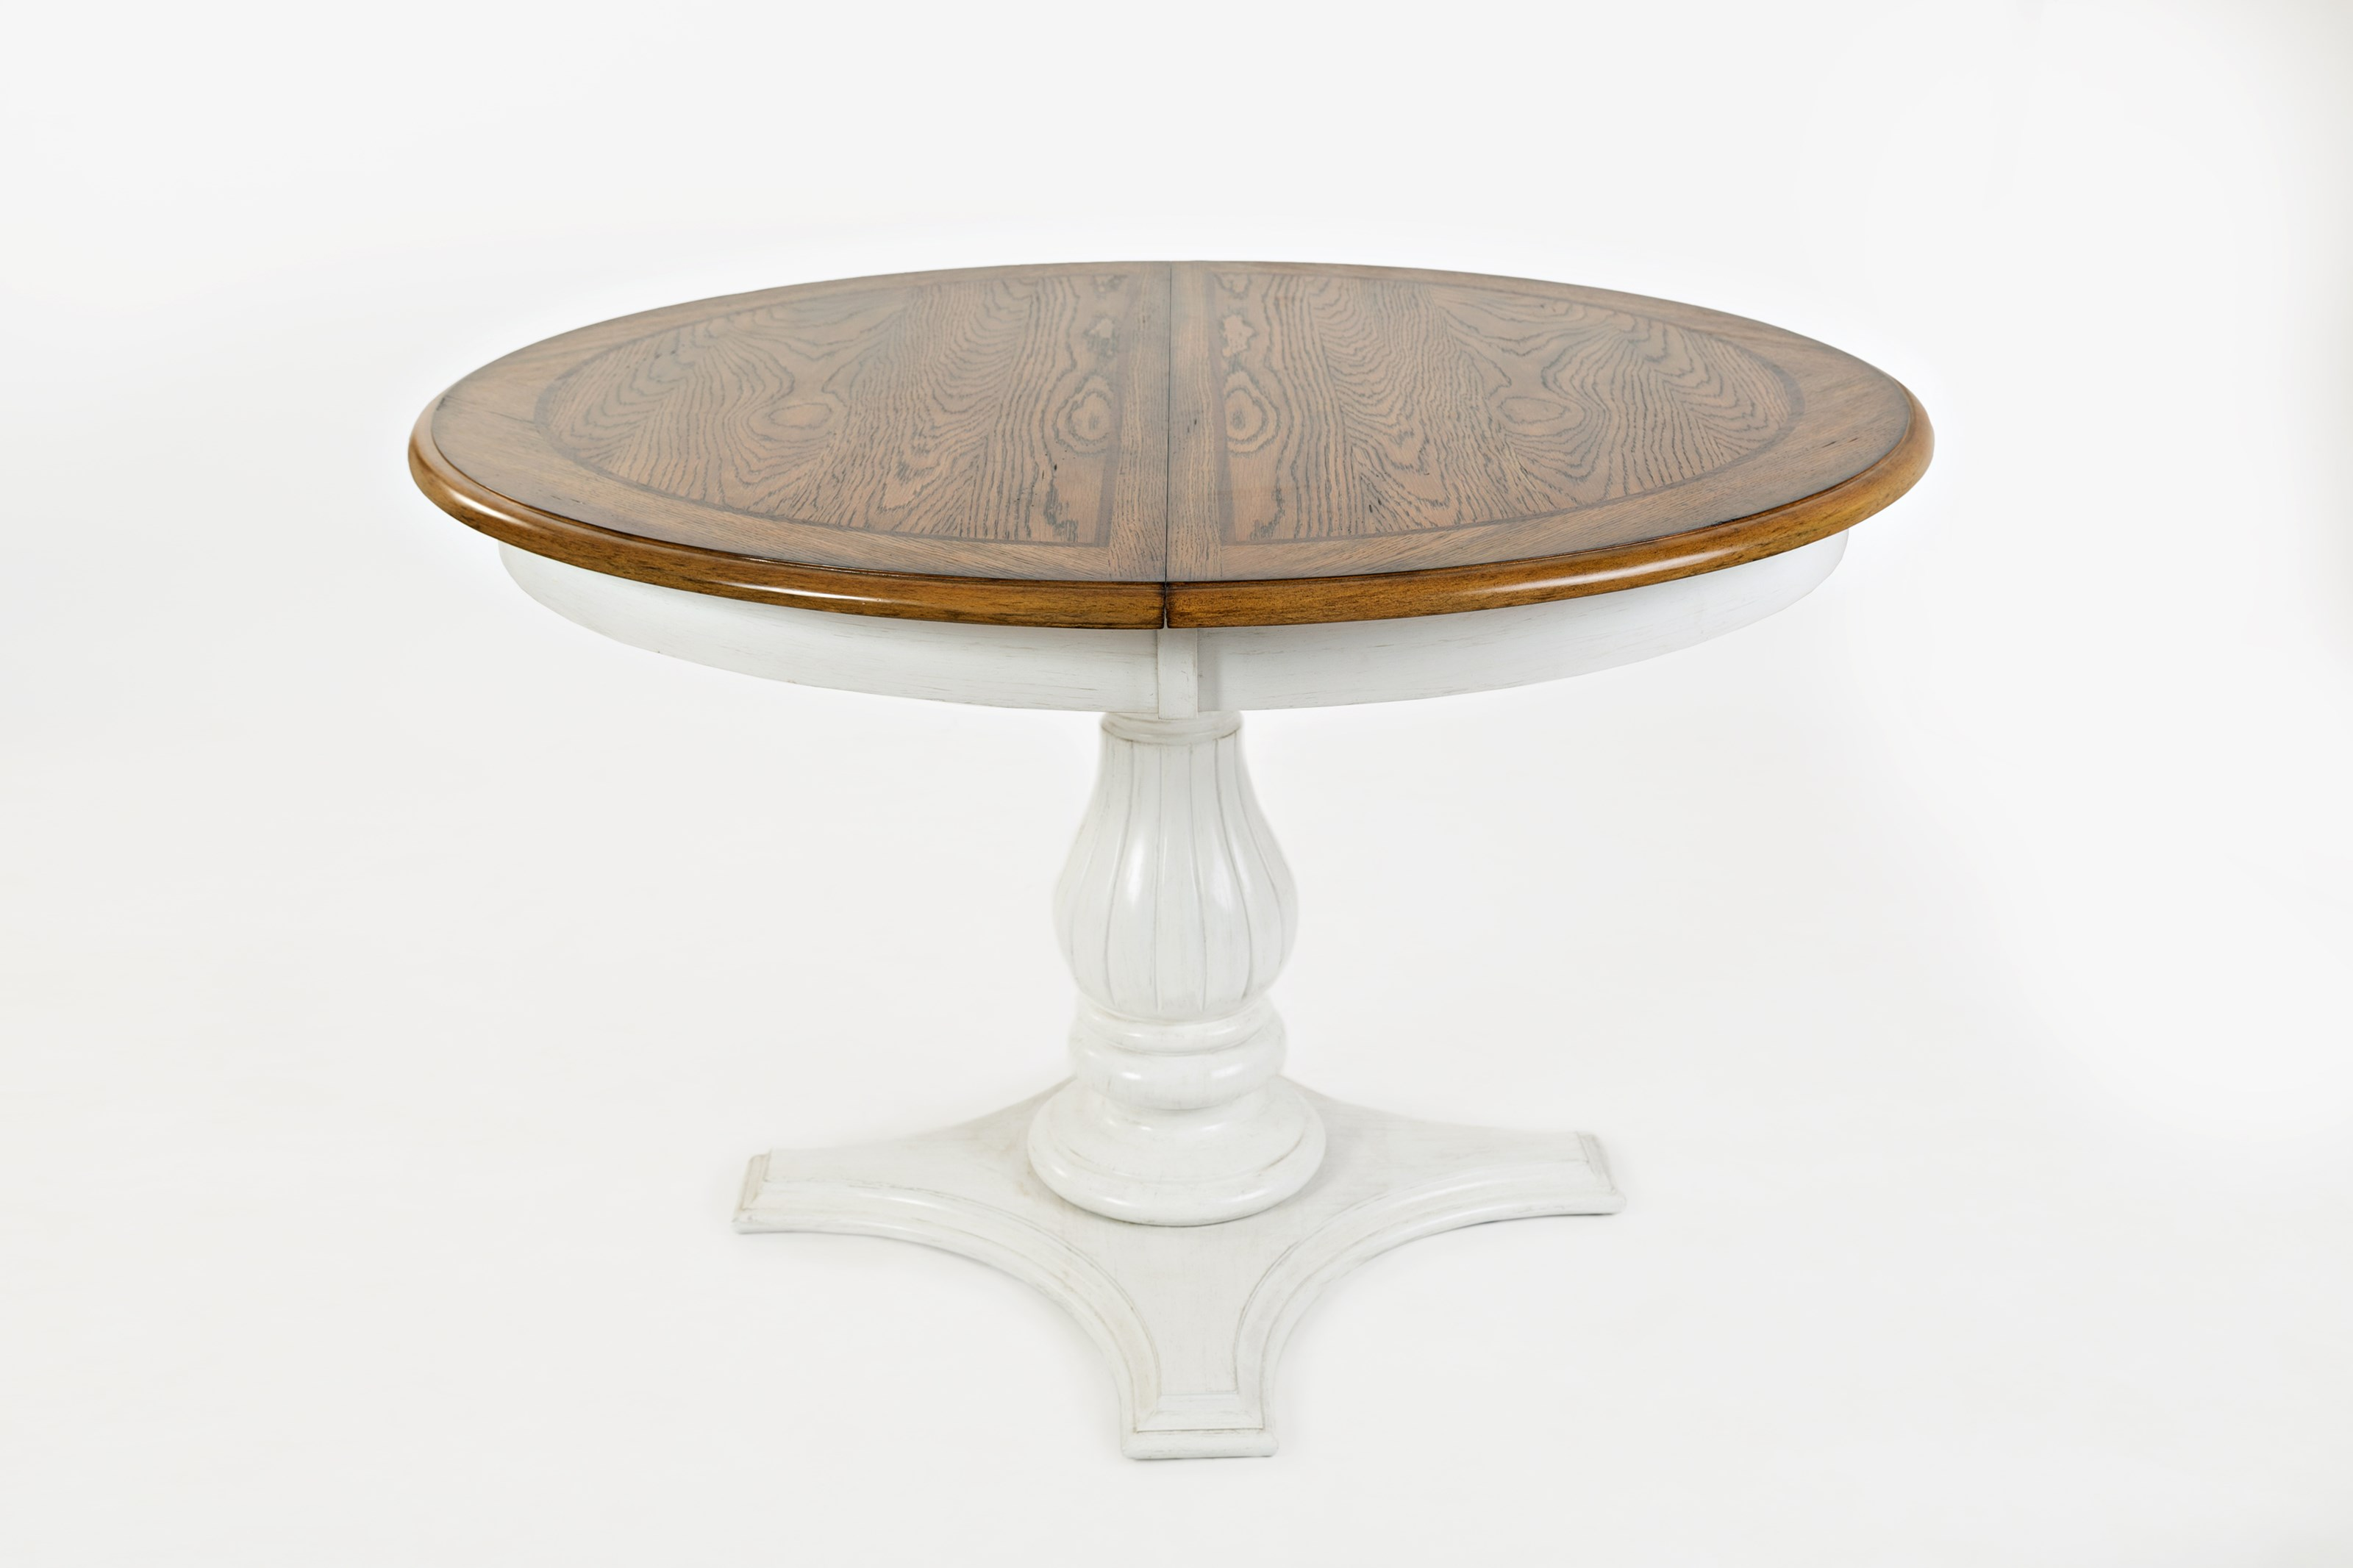 Castle Hill Round to Oval Pedestal Dining Table by Jofran at Sparks HomeStore